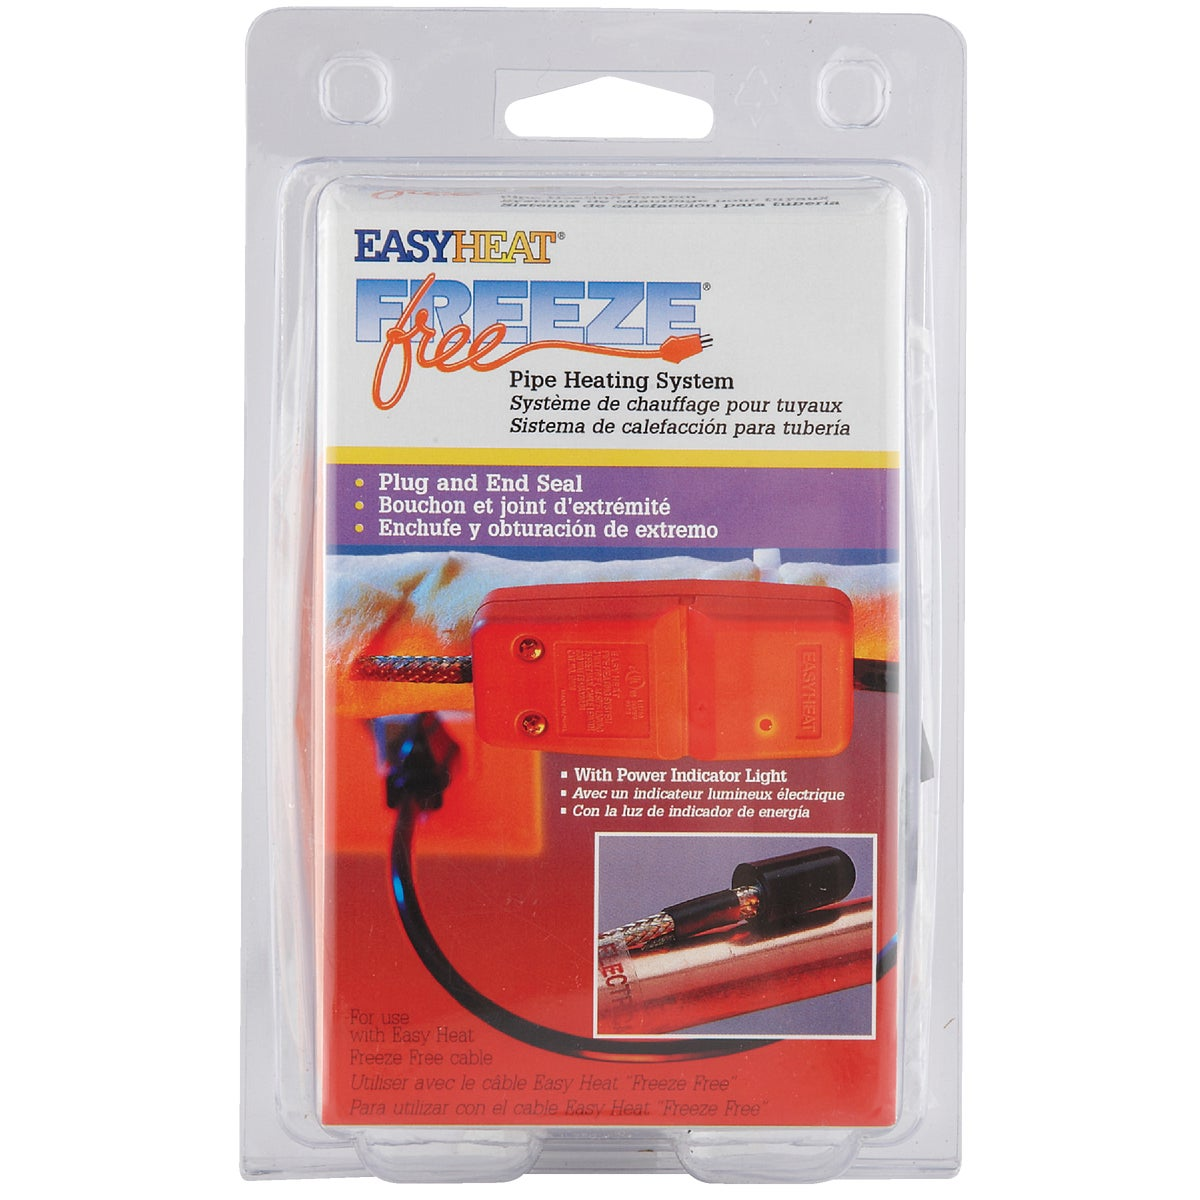 HEATING CABLE PLUG KIT - 10802 by Easy Heat Inc